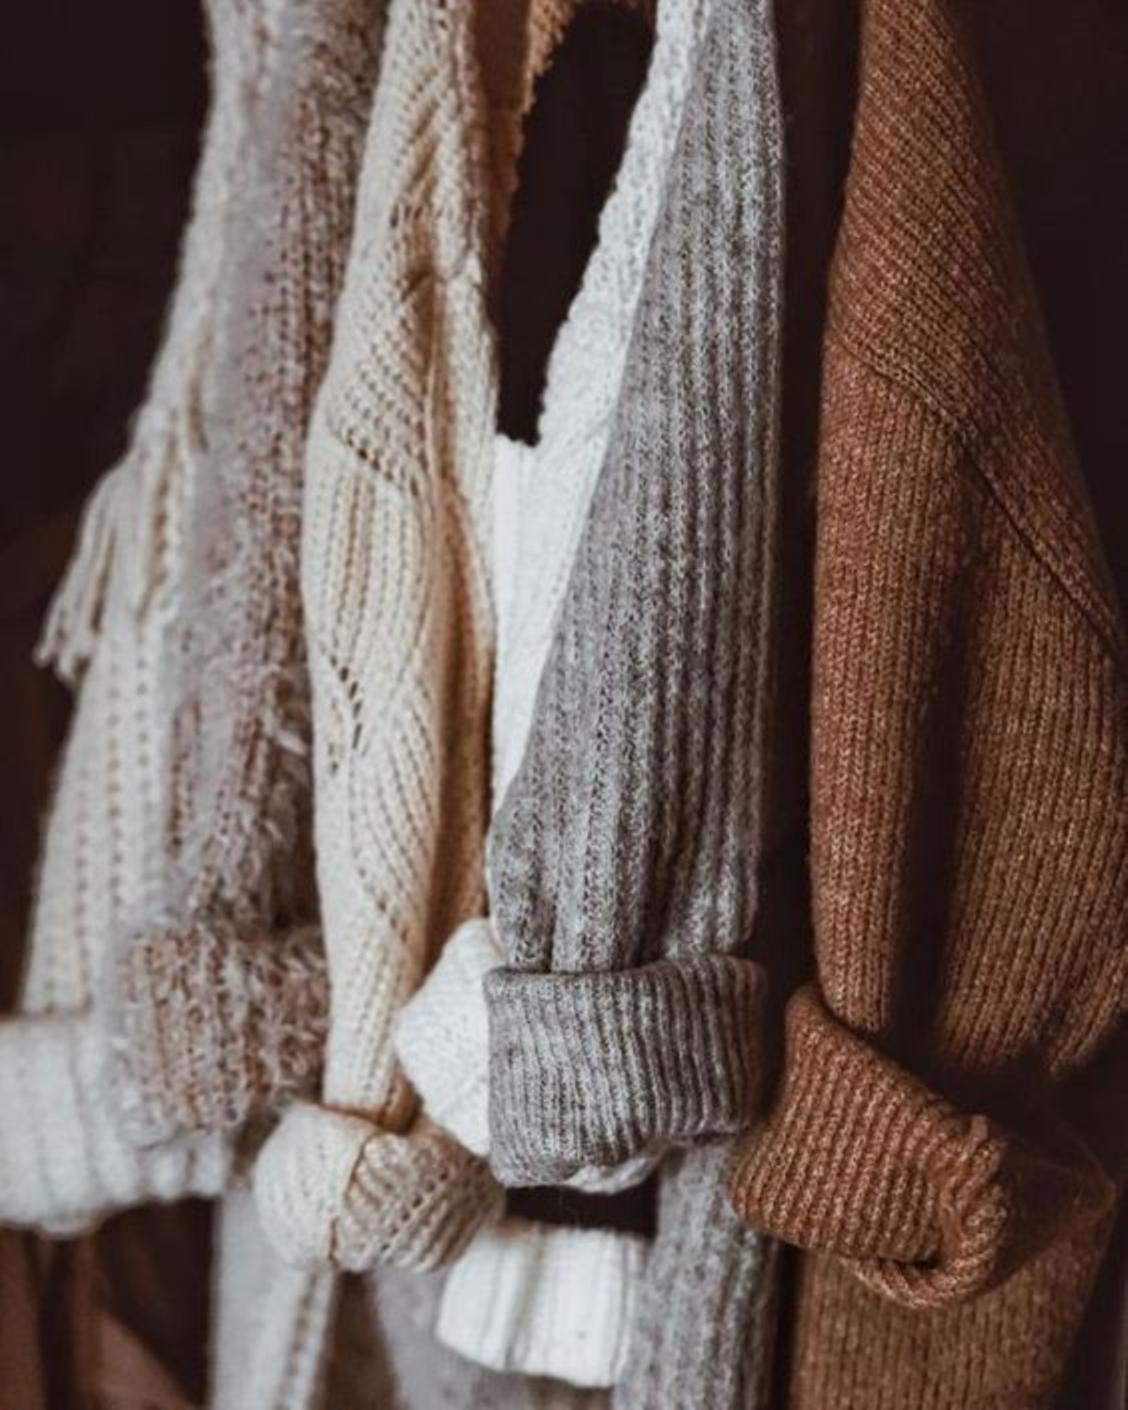 It's Sweater Weather